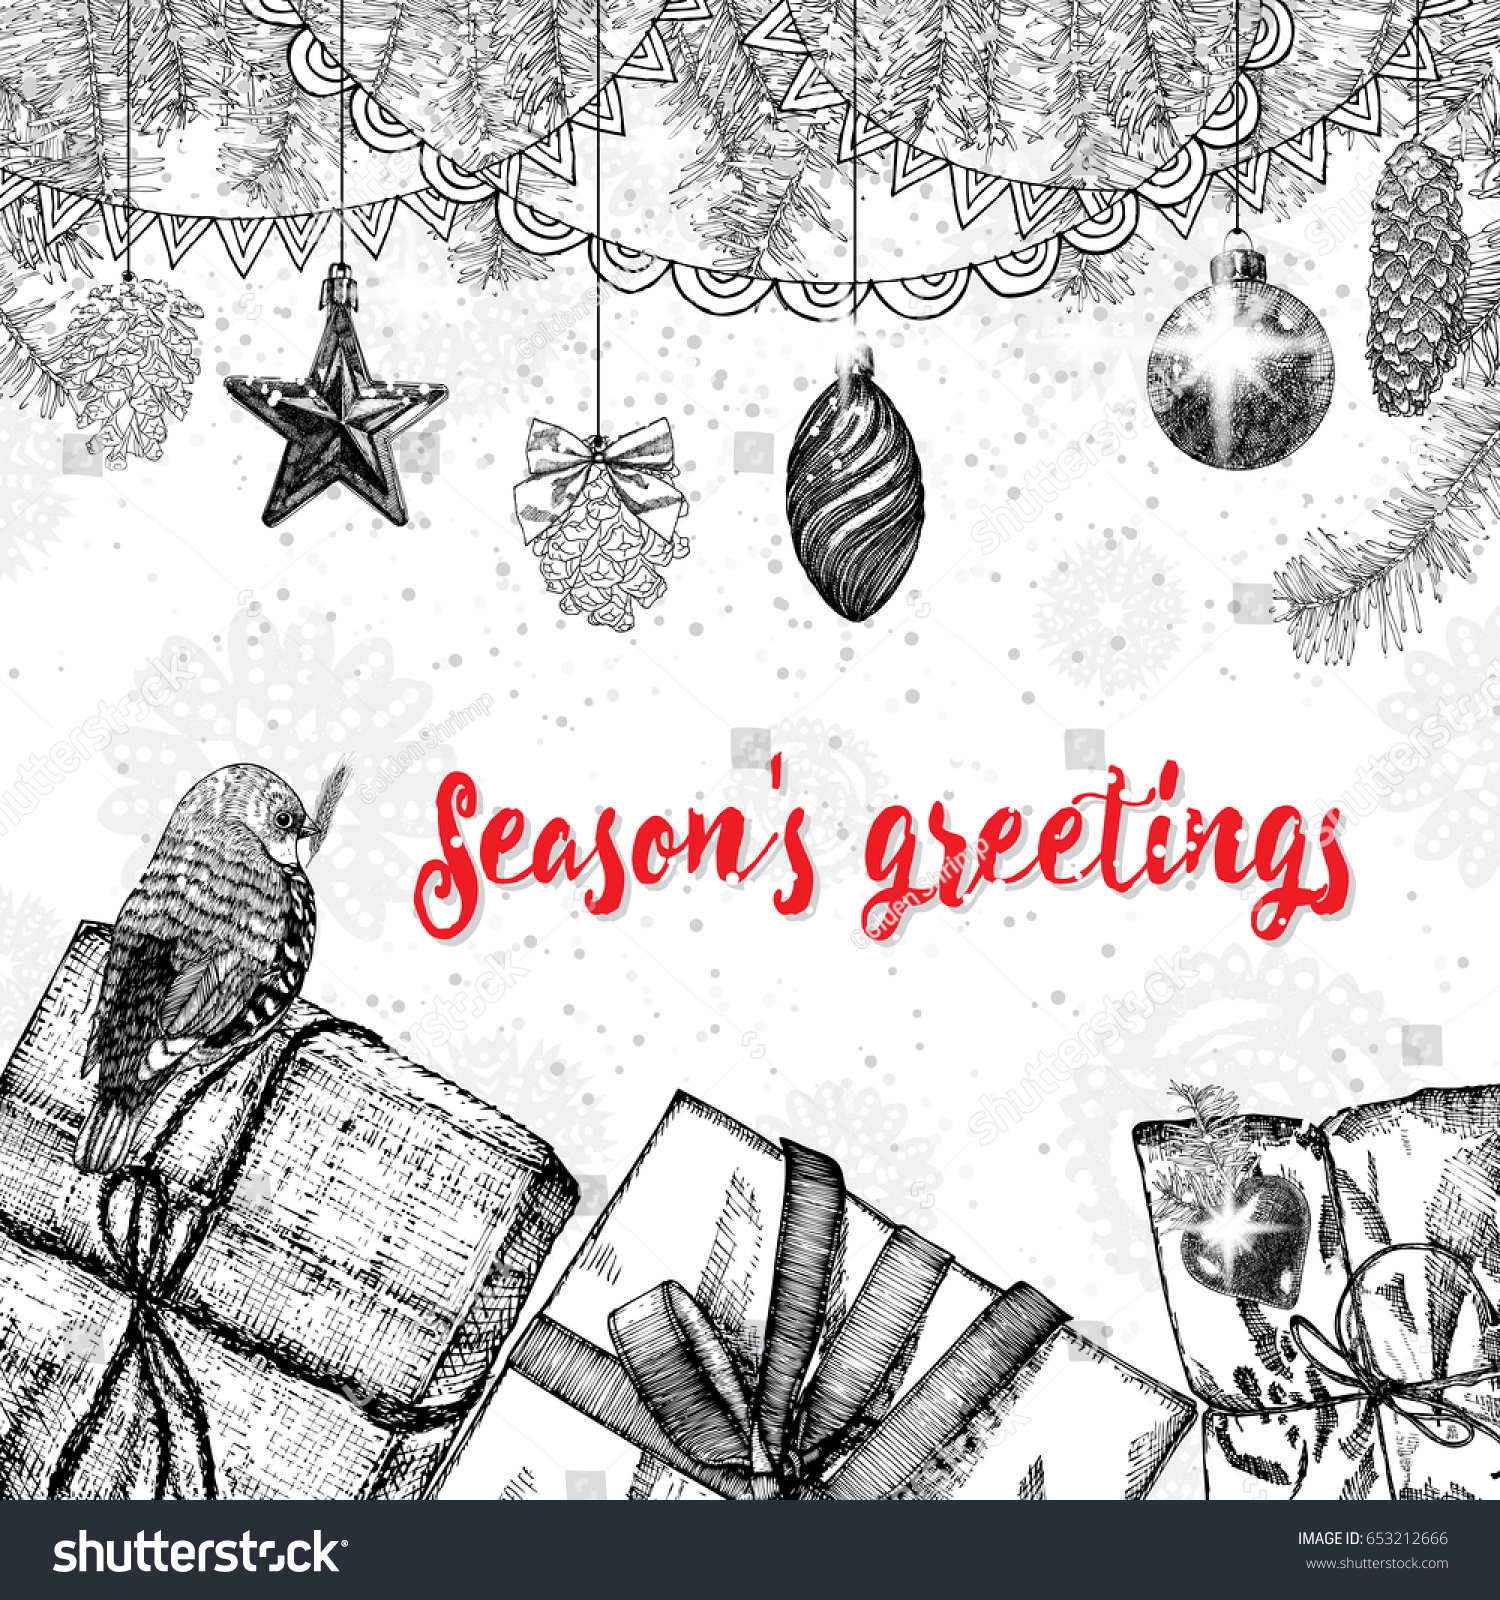 Seasons greetings text design handdrawn typography stock seasons greetings text design handdrawn typography for banner greeting card kristyandbryce Choice Image